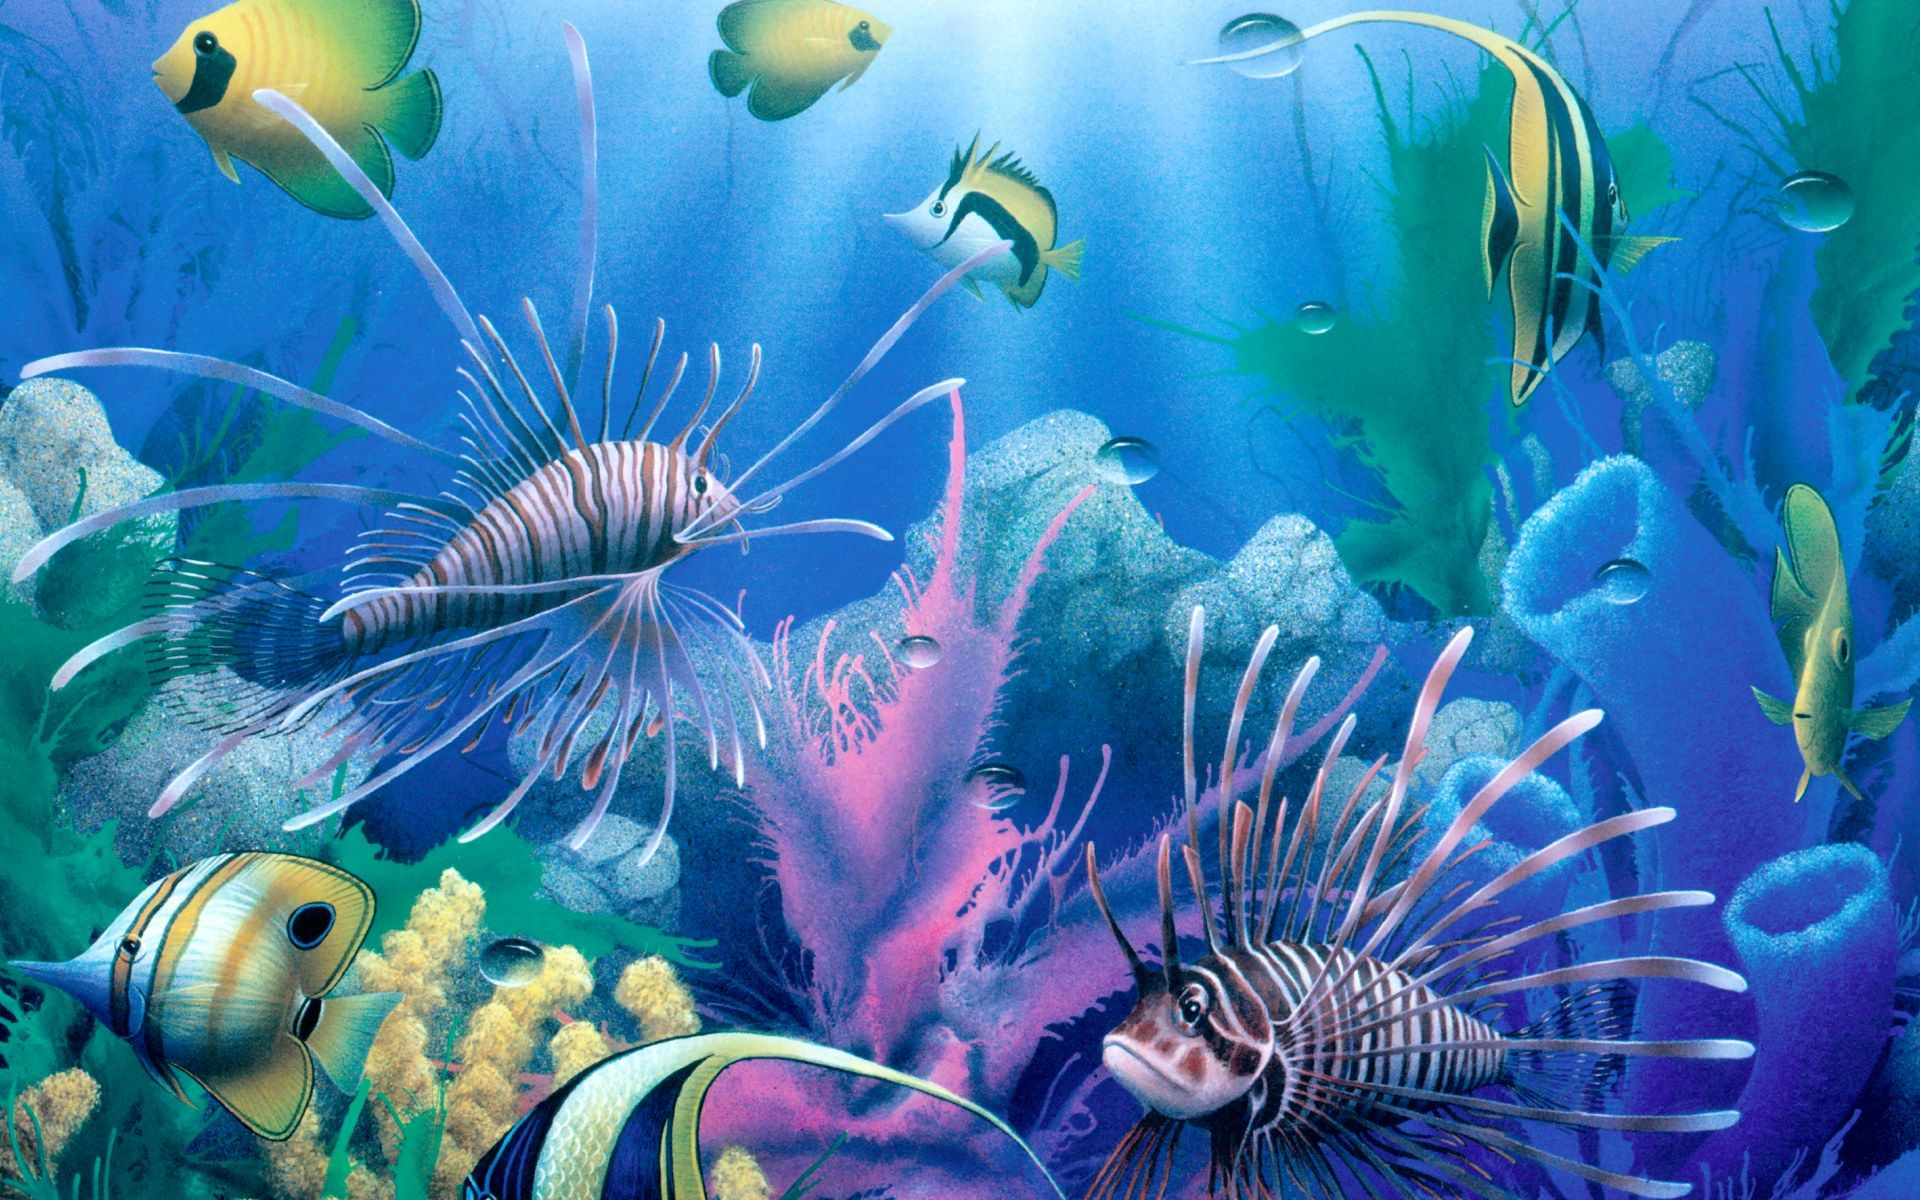 fish 3d beautiful wallpaper in hd 1220 hd wallpapers